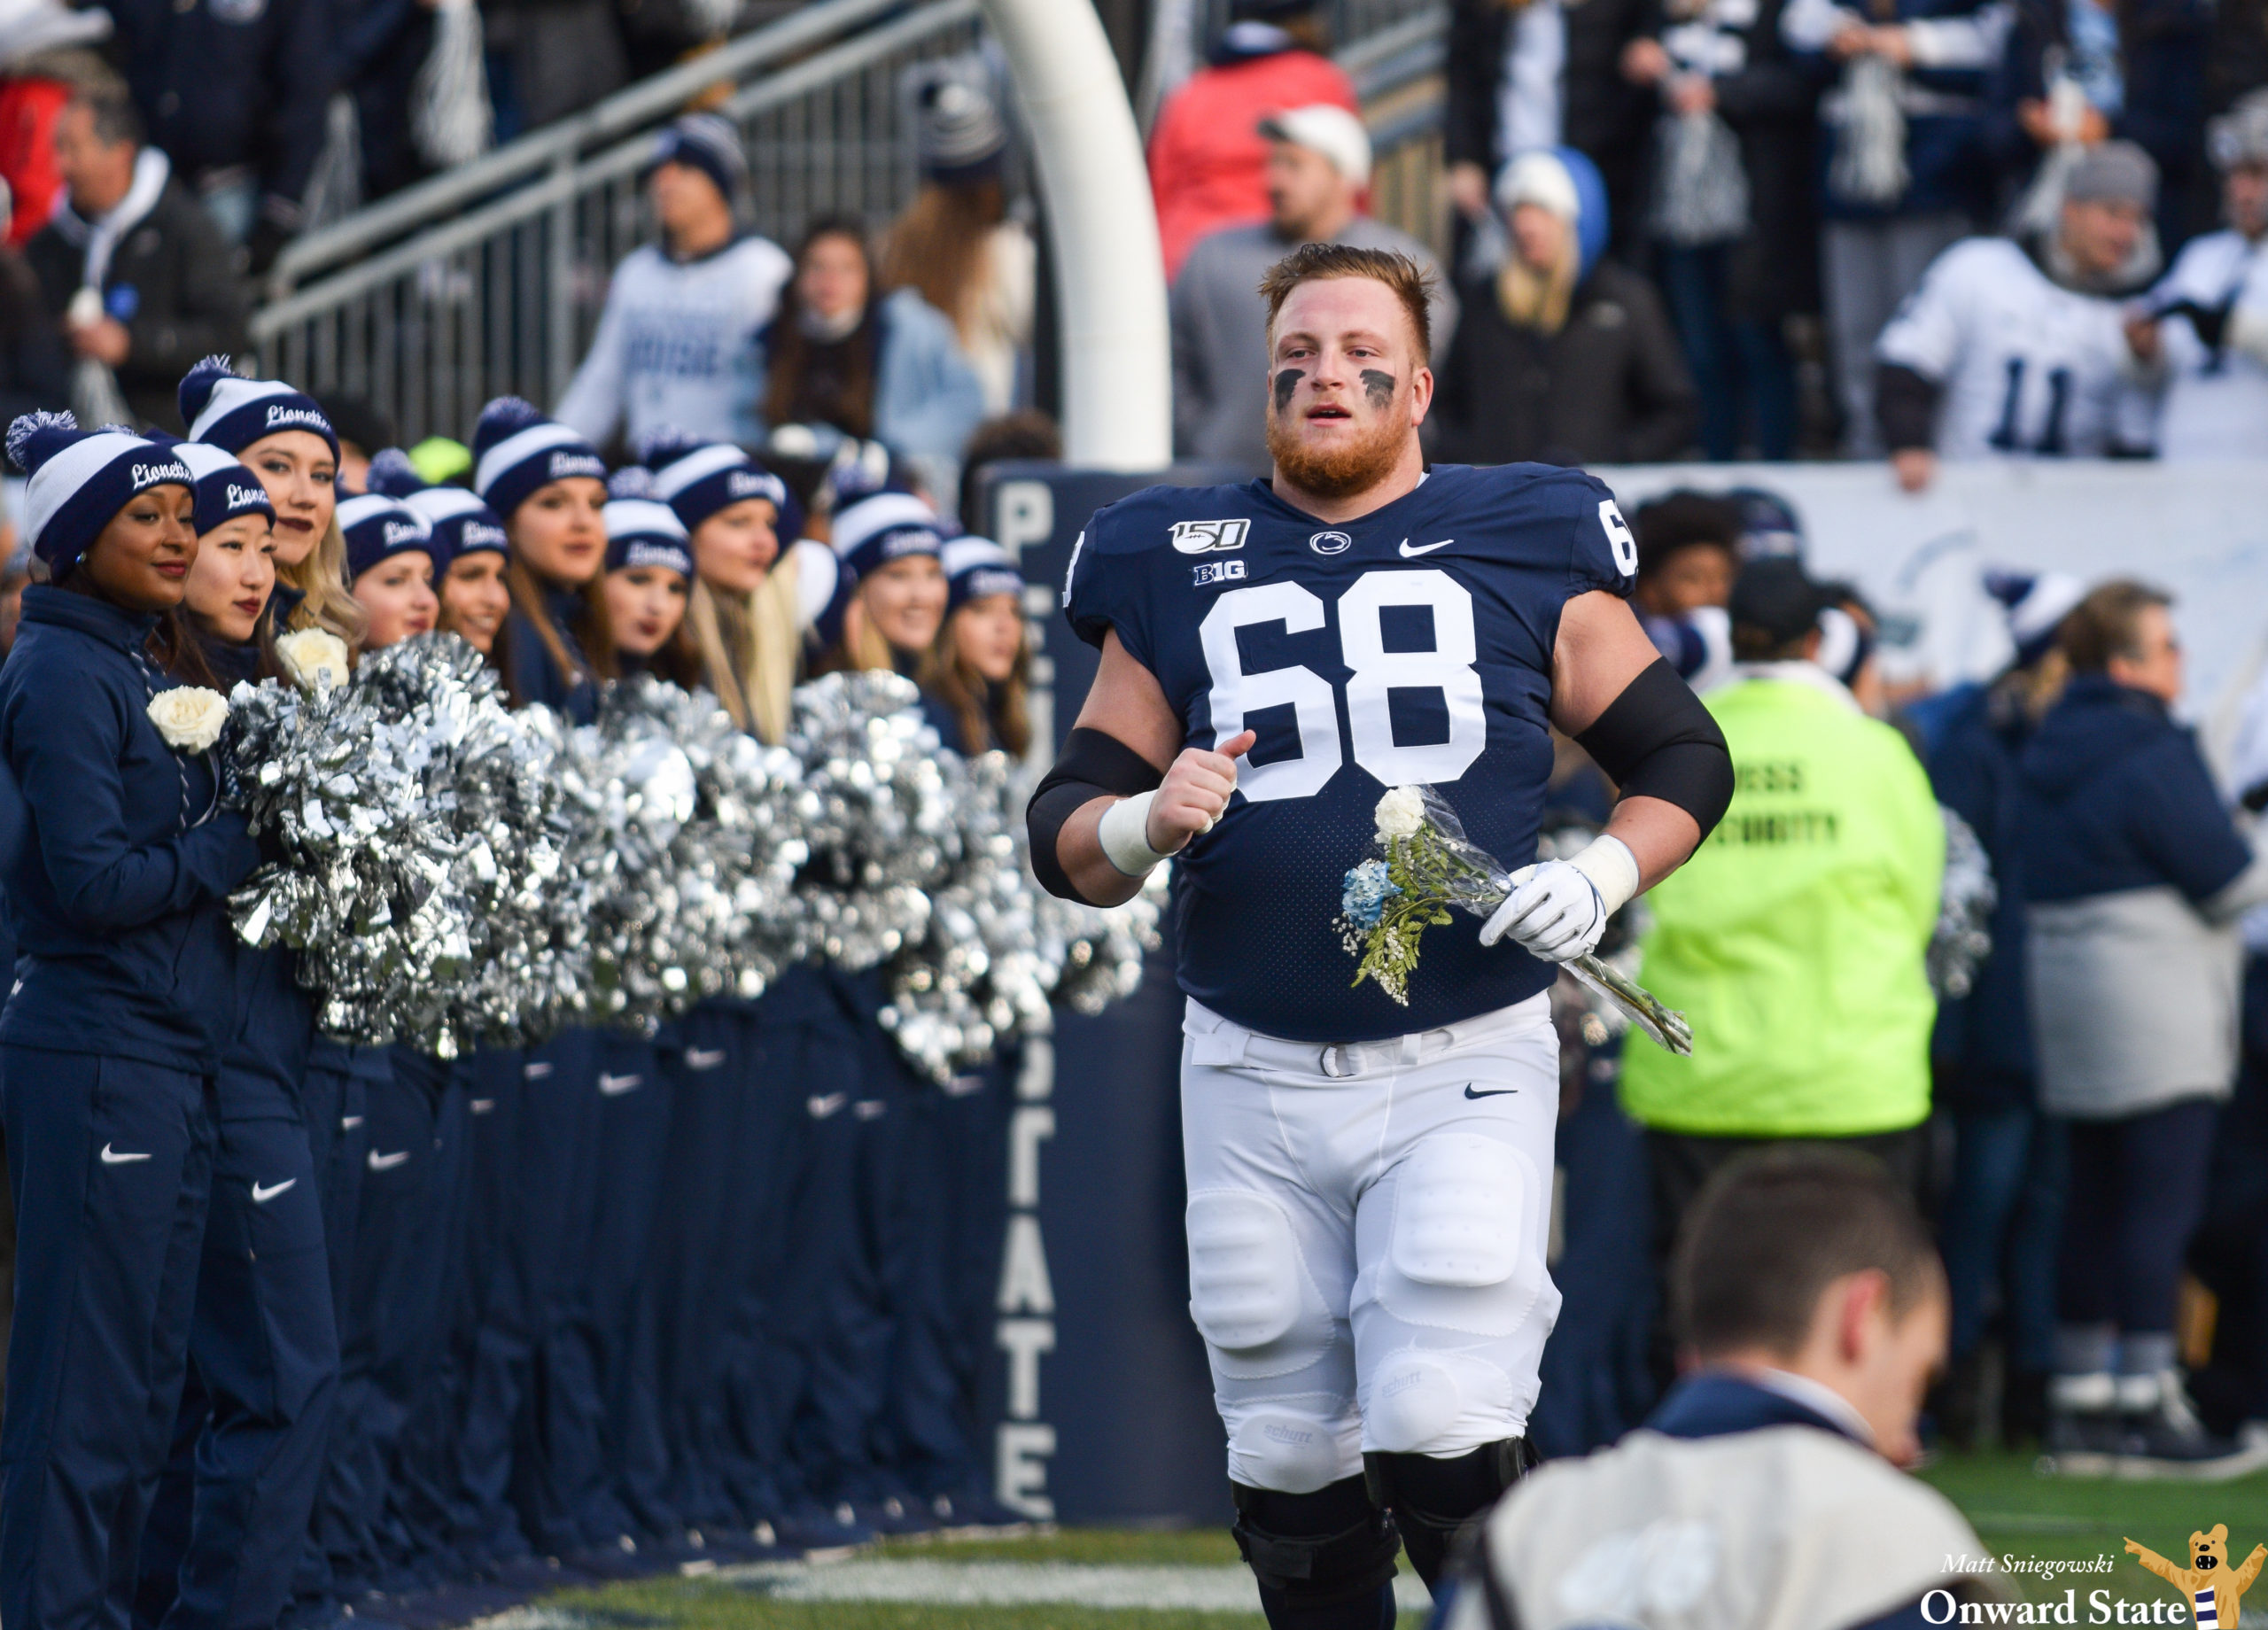 Penn State faces tough test vs No. 21 Ohio State